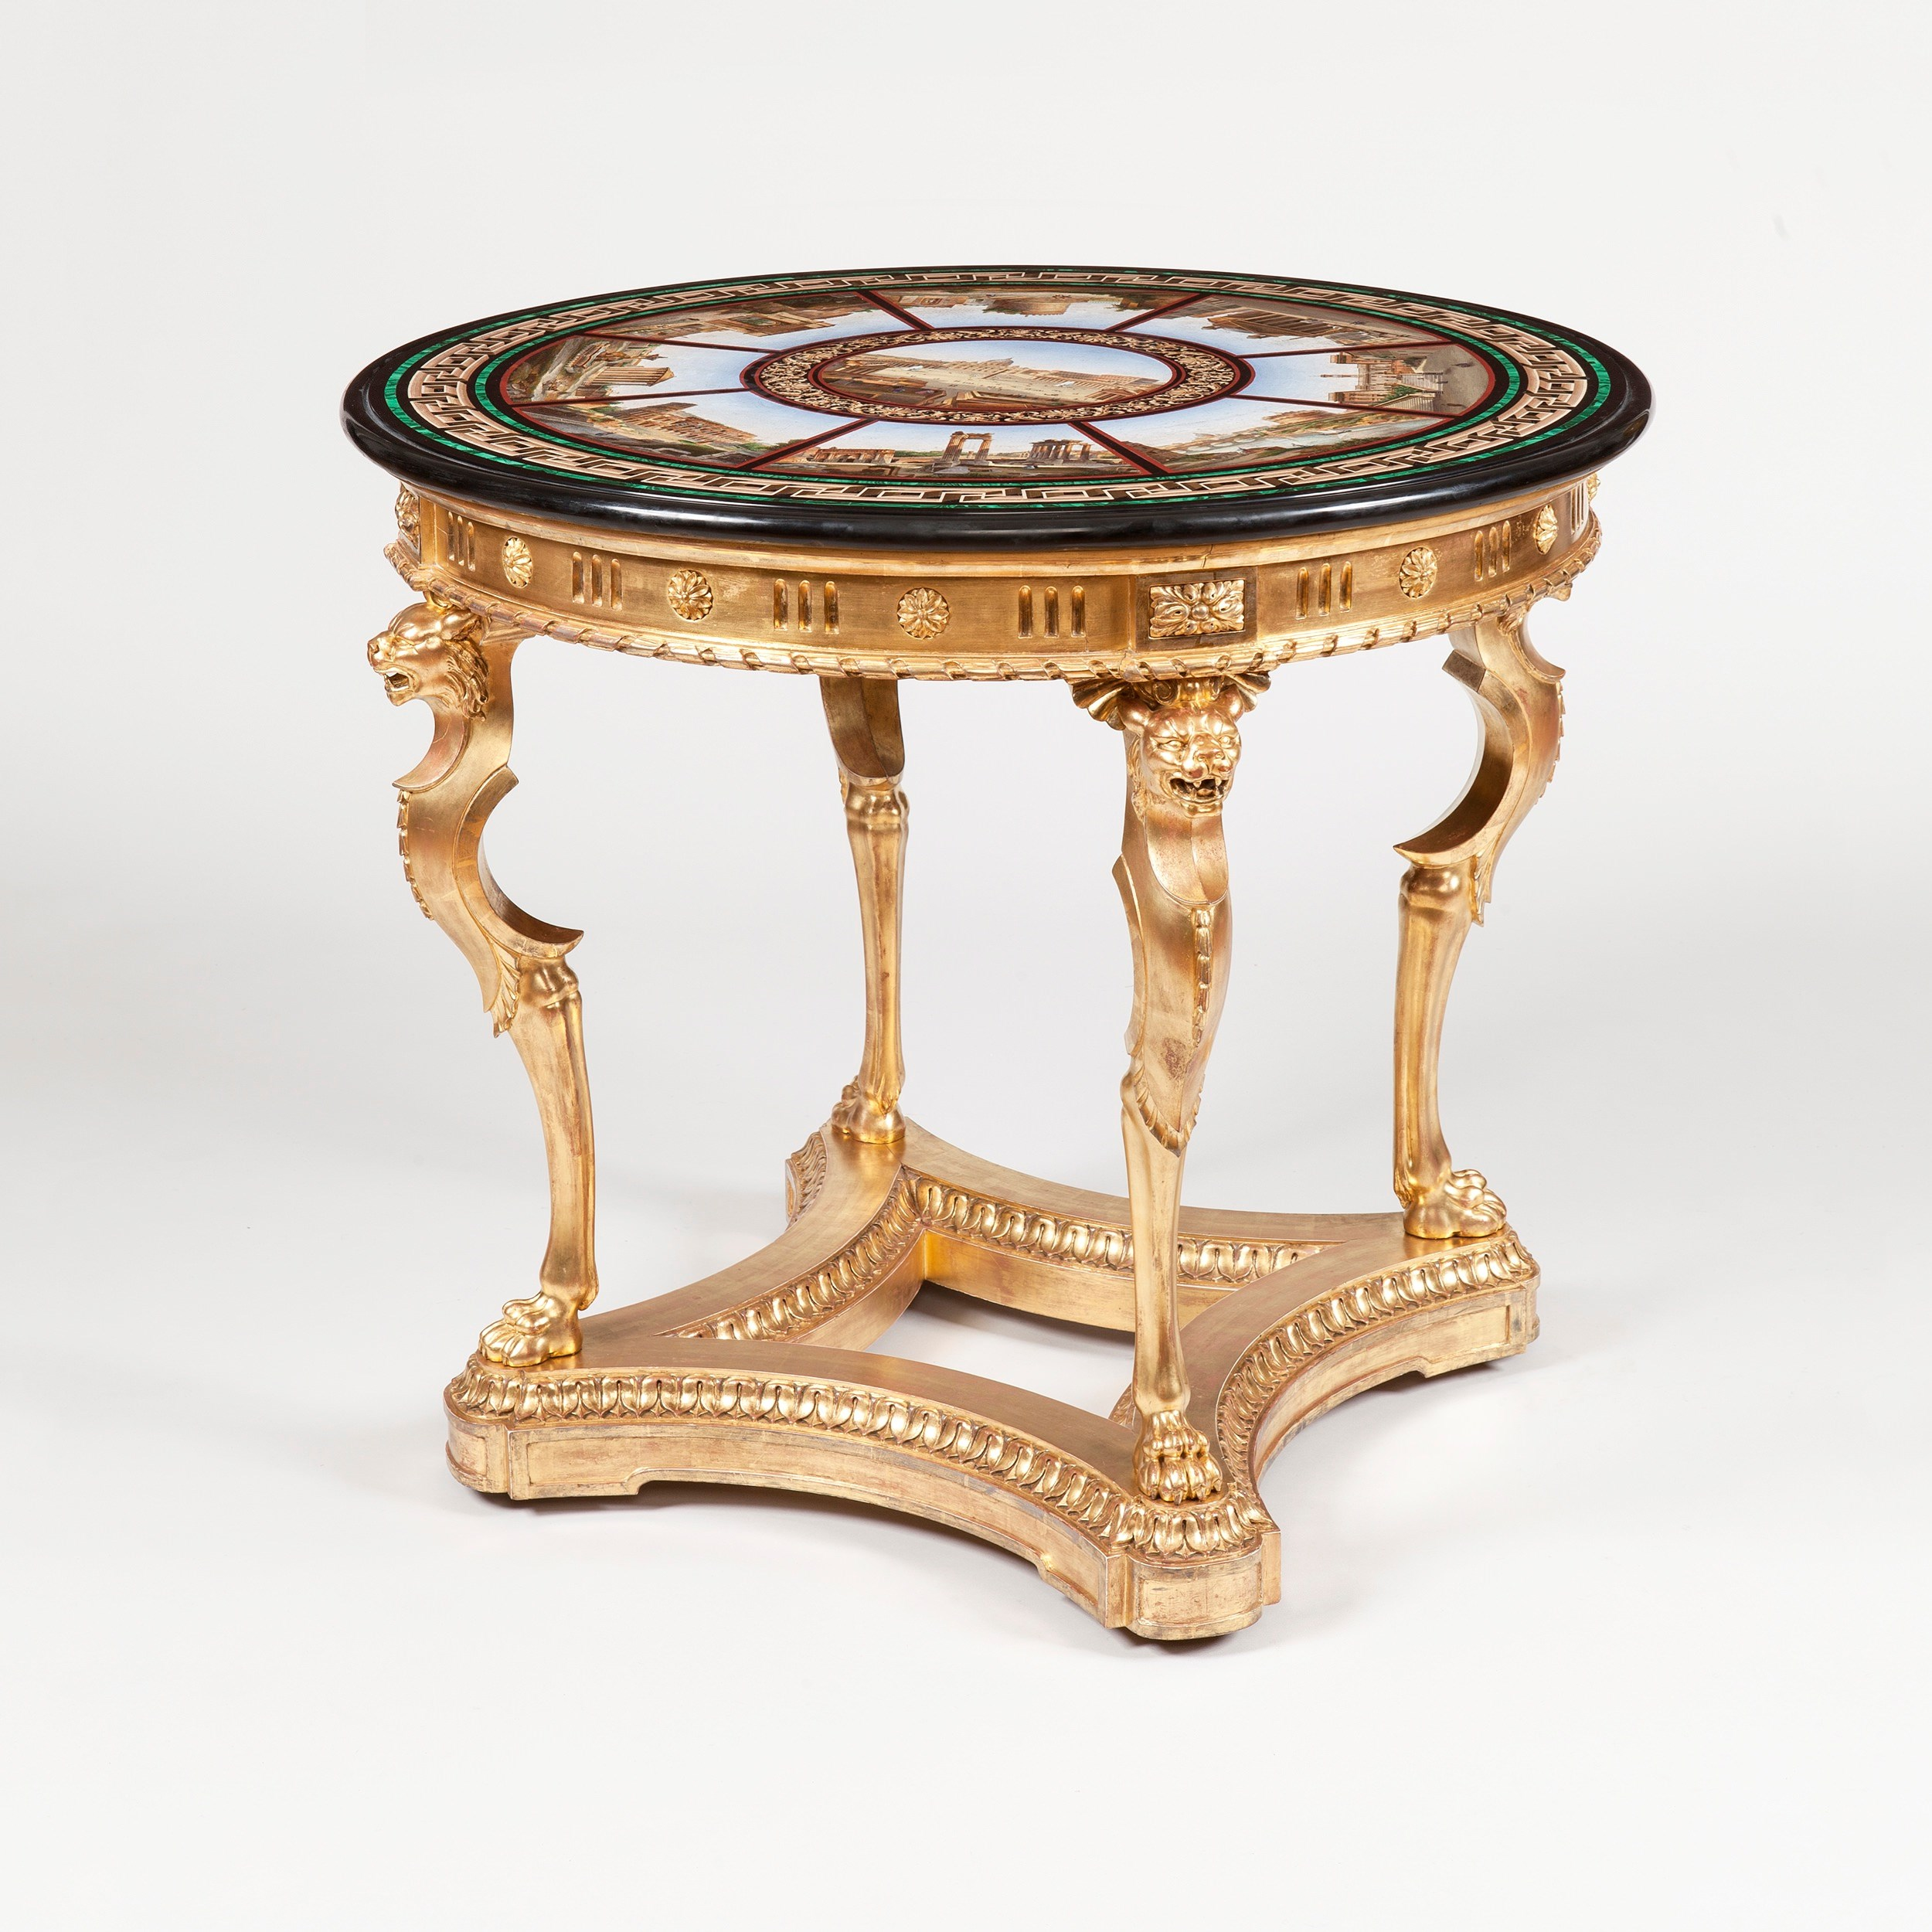 Noble Antique Italian Mico Mosaic Centre Table | Butchoff Antiques   Object  Details